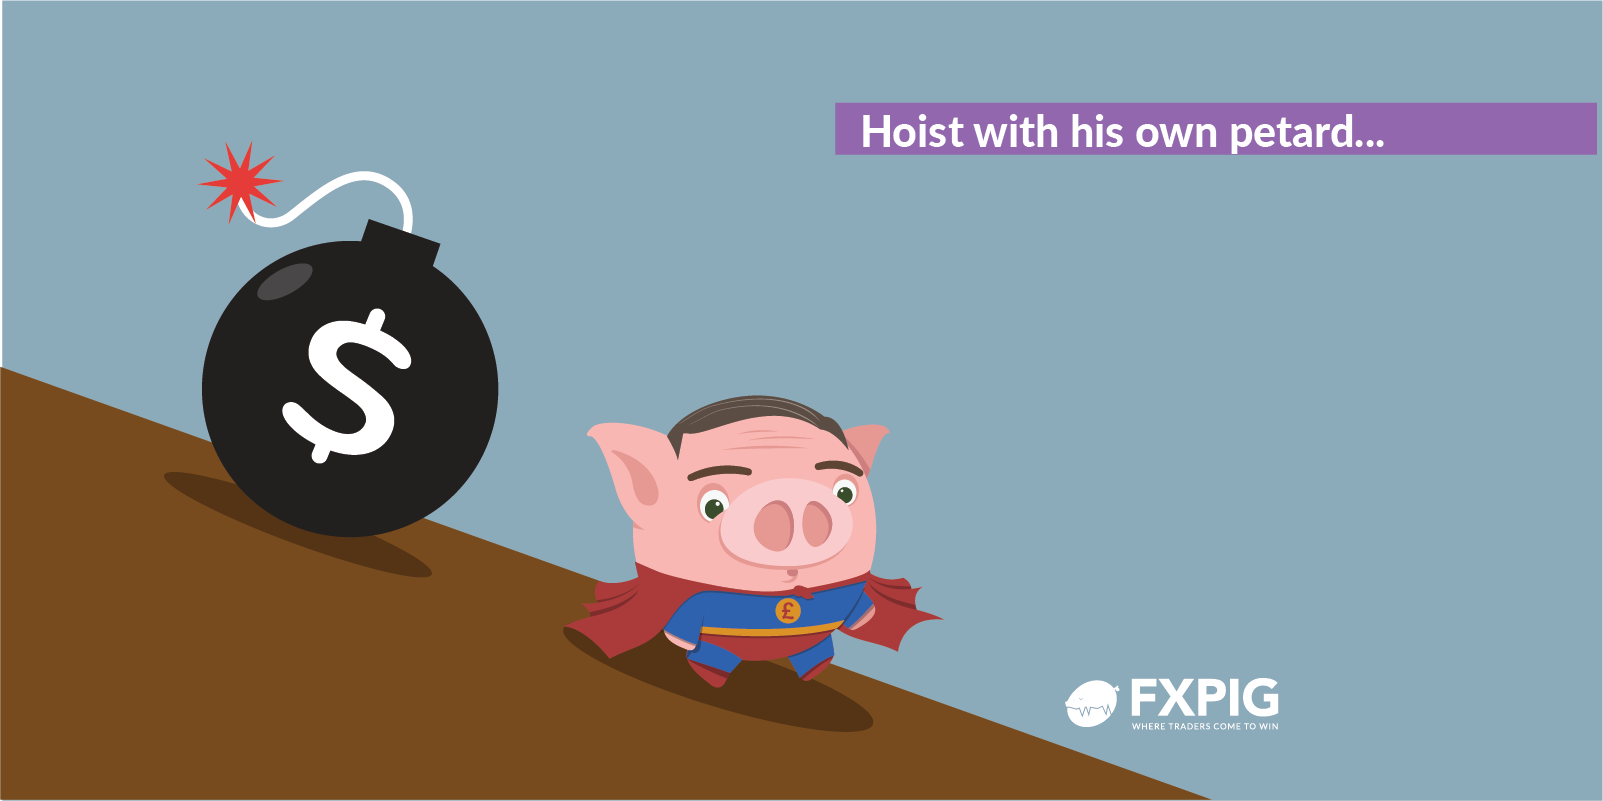 FOREX_hosit-with-his-own-petard2205_FXPIG